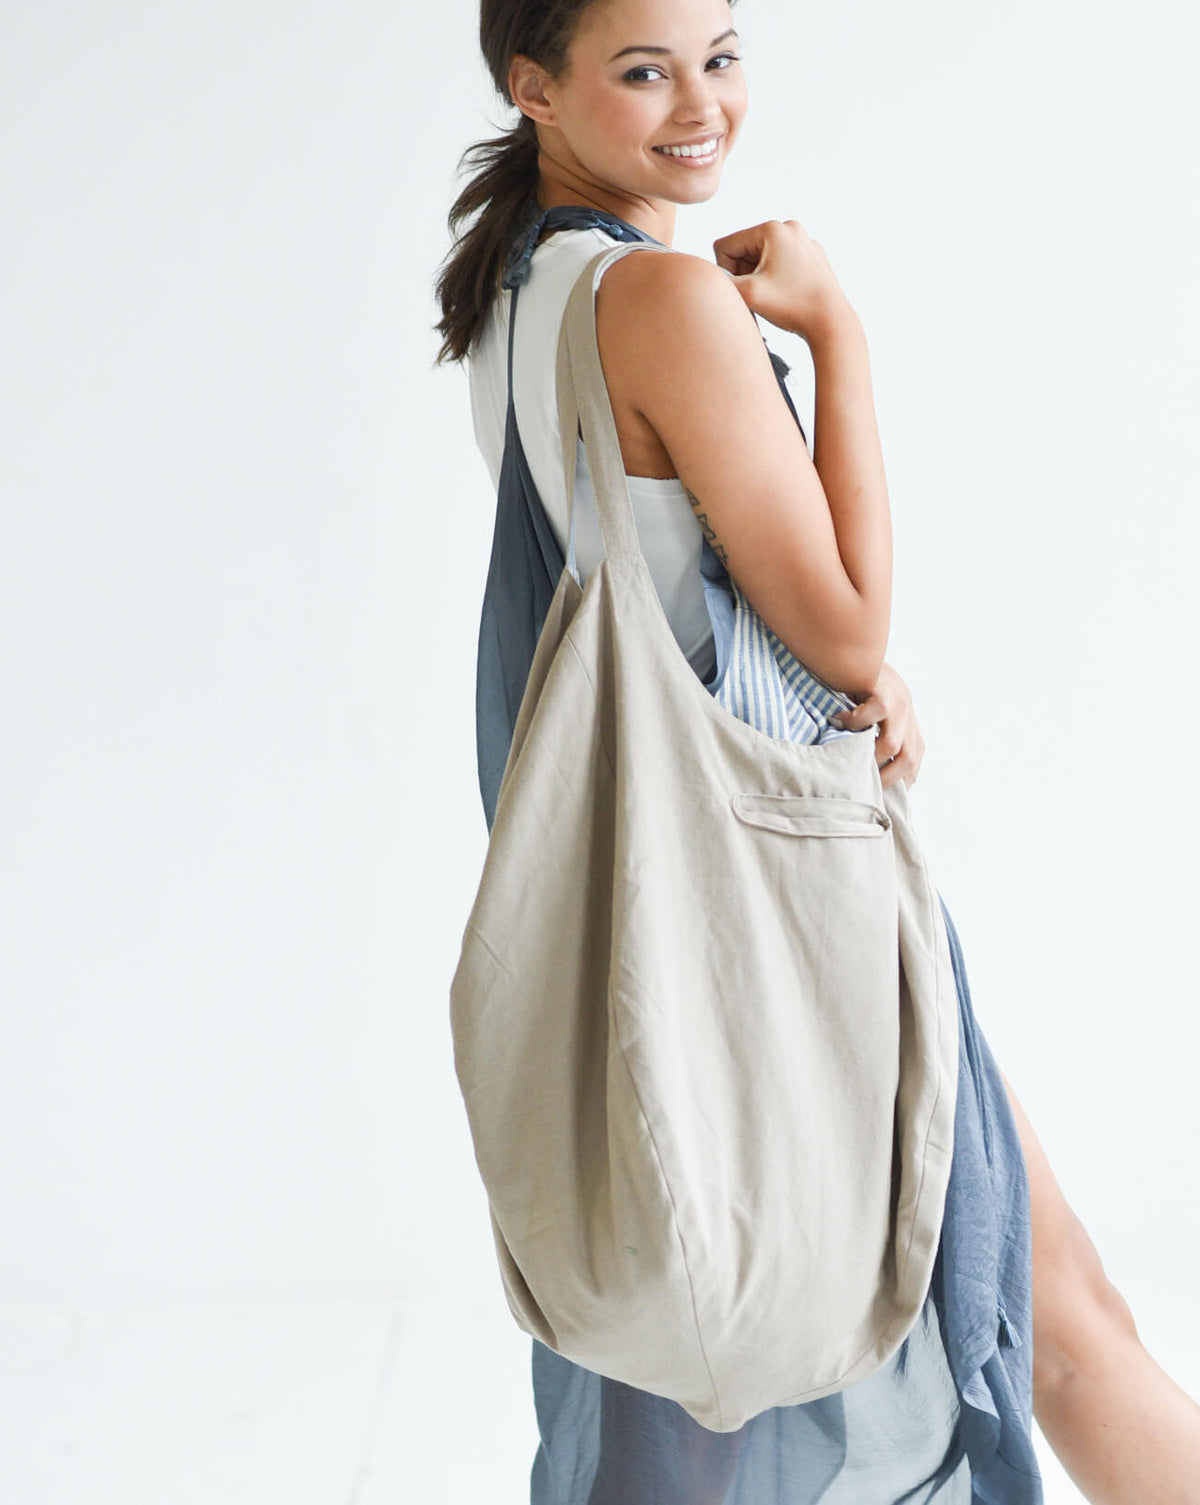 Mer-Sea & Co. Gemini Reversible Cotton Tote - Khaki